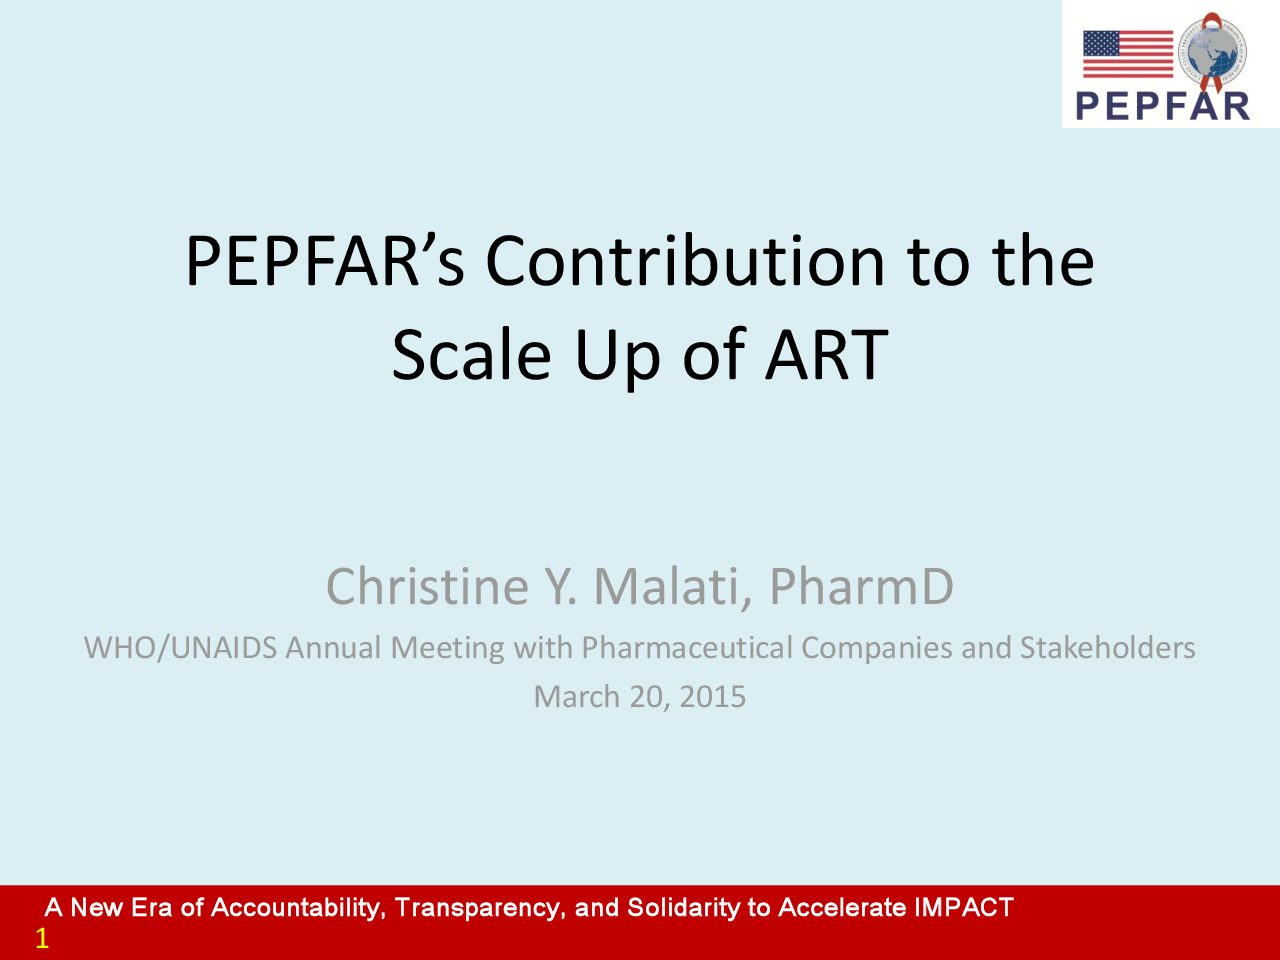 PEPFAR's Contribution to the Scale Up of ART